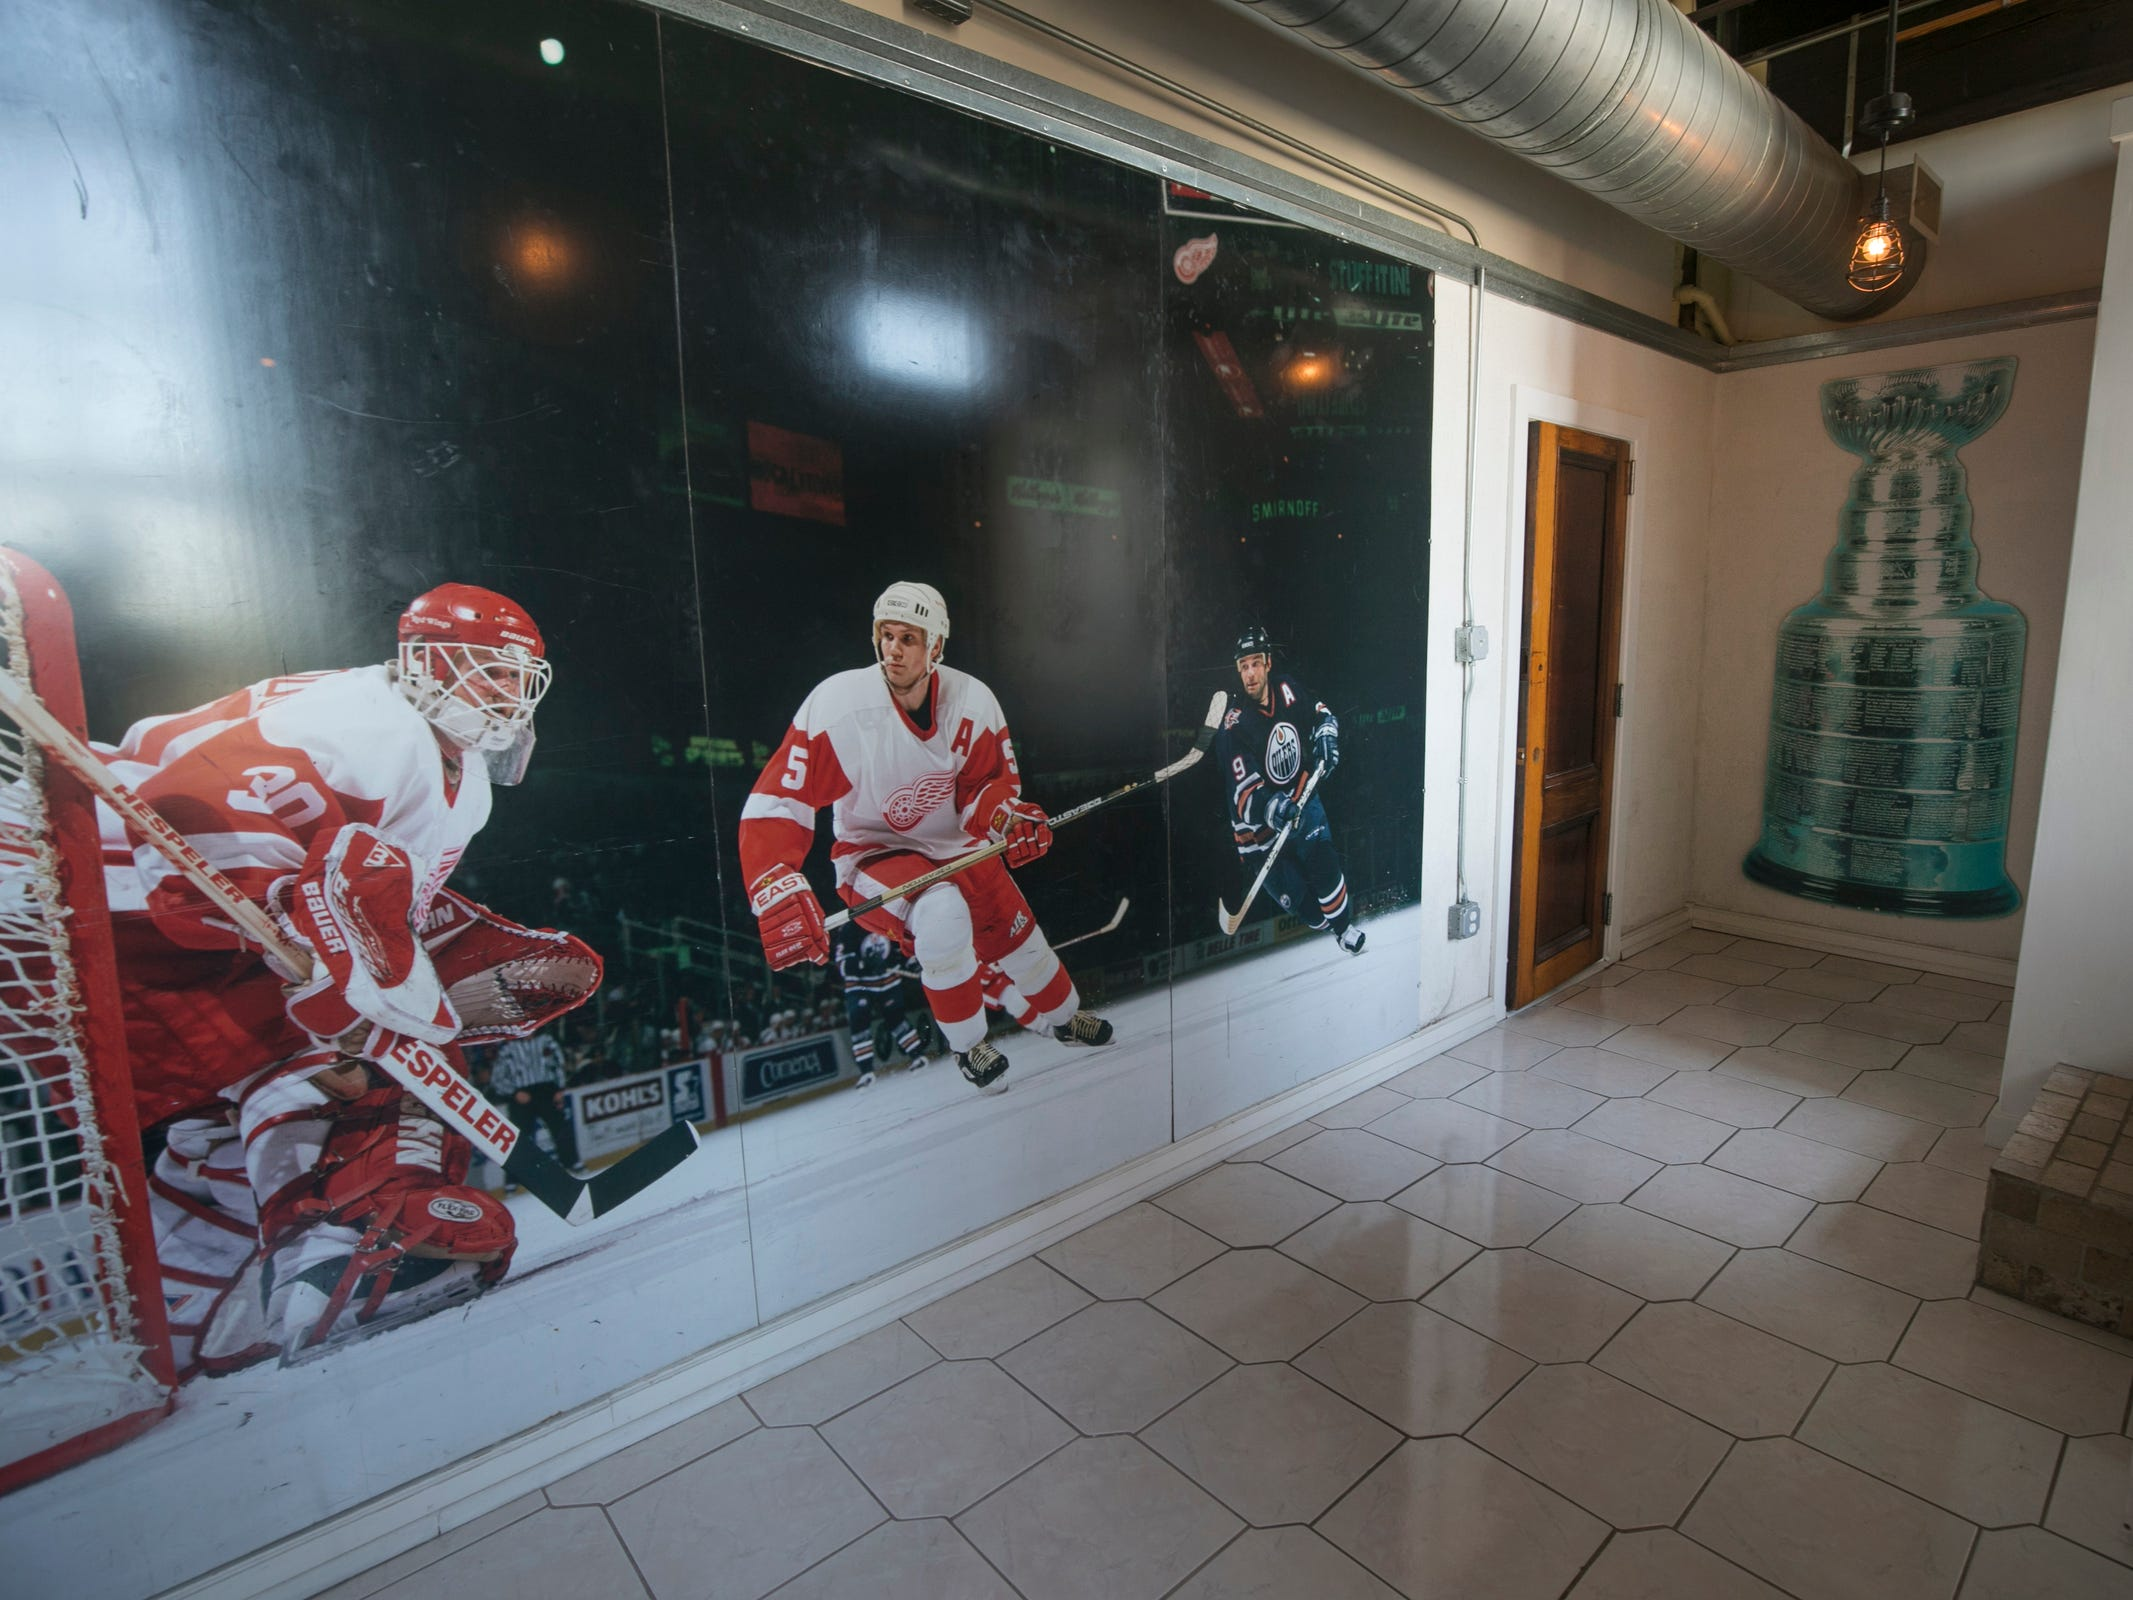 The Red Wings-in-action wall covering came from this spring's auction at Joe Louis Arena. The loft renovation was done by a suburban family that likes to stay in the city for Red Wings, Tigers and other events.